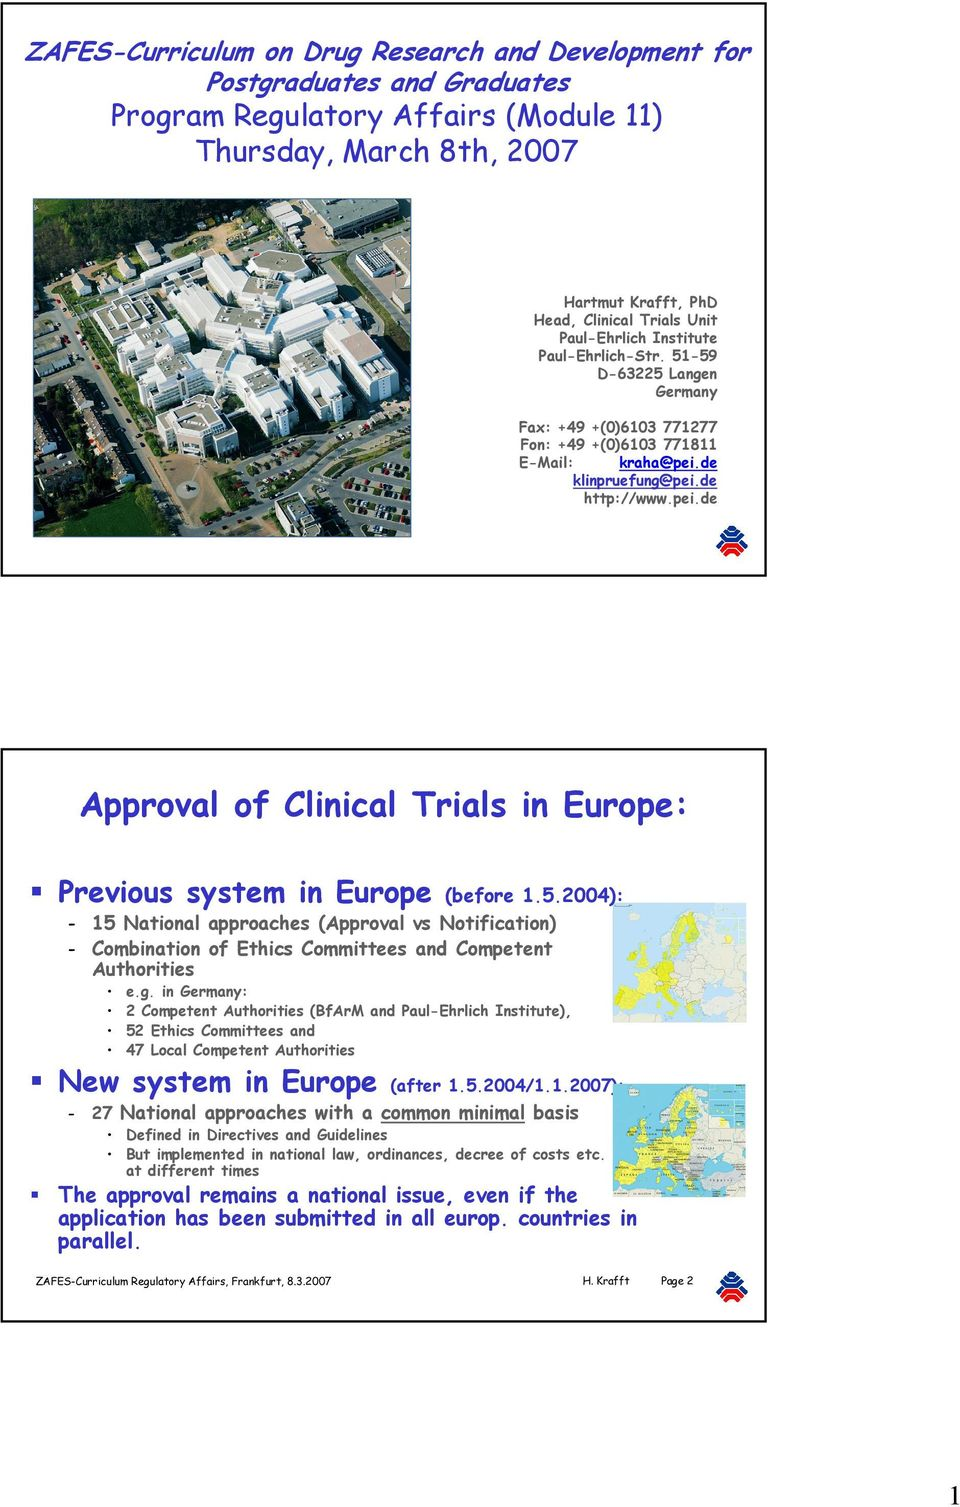 de klinpruefung@pei.de http://www.pei.de Approval of Clinical Trials in Europe: Previous system in Europe (before 1.5.